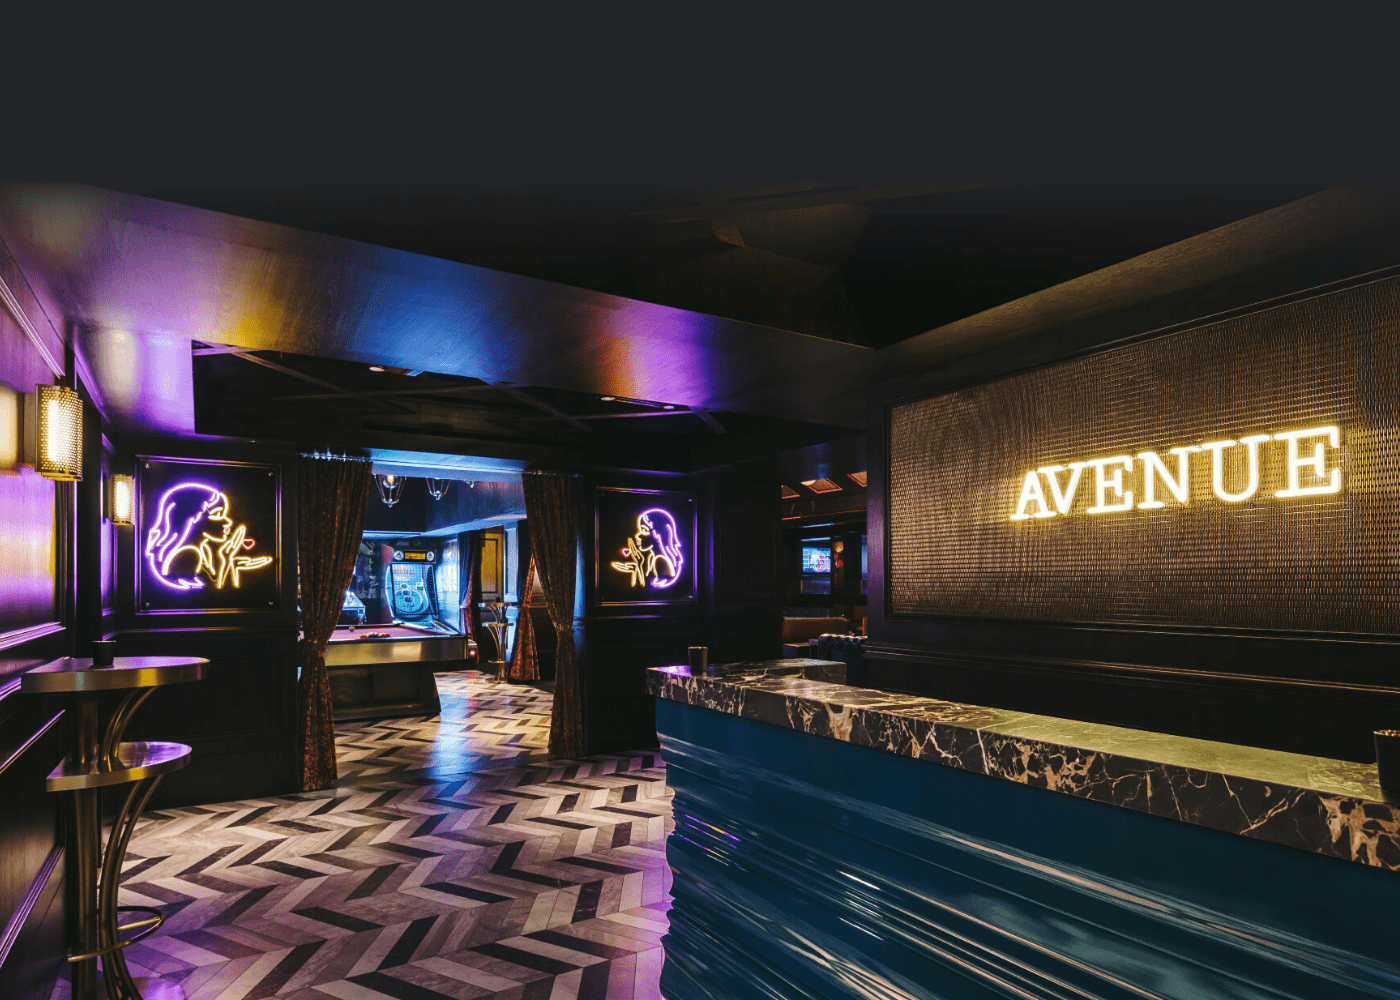 Best arcade bars and clubs in Singapore: Avenue